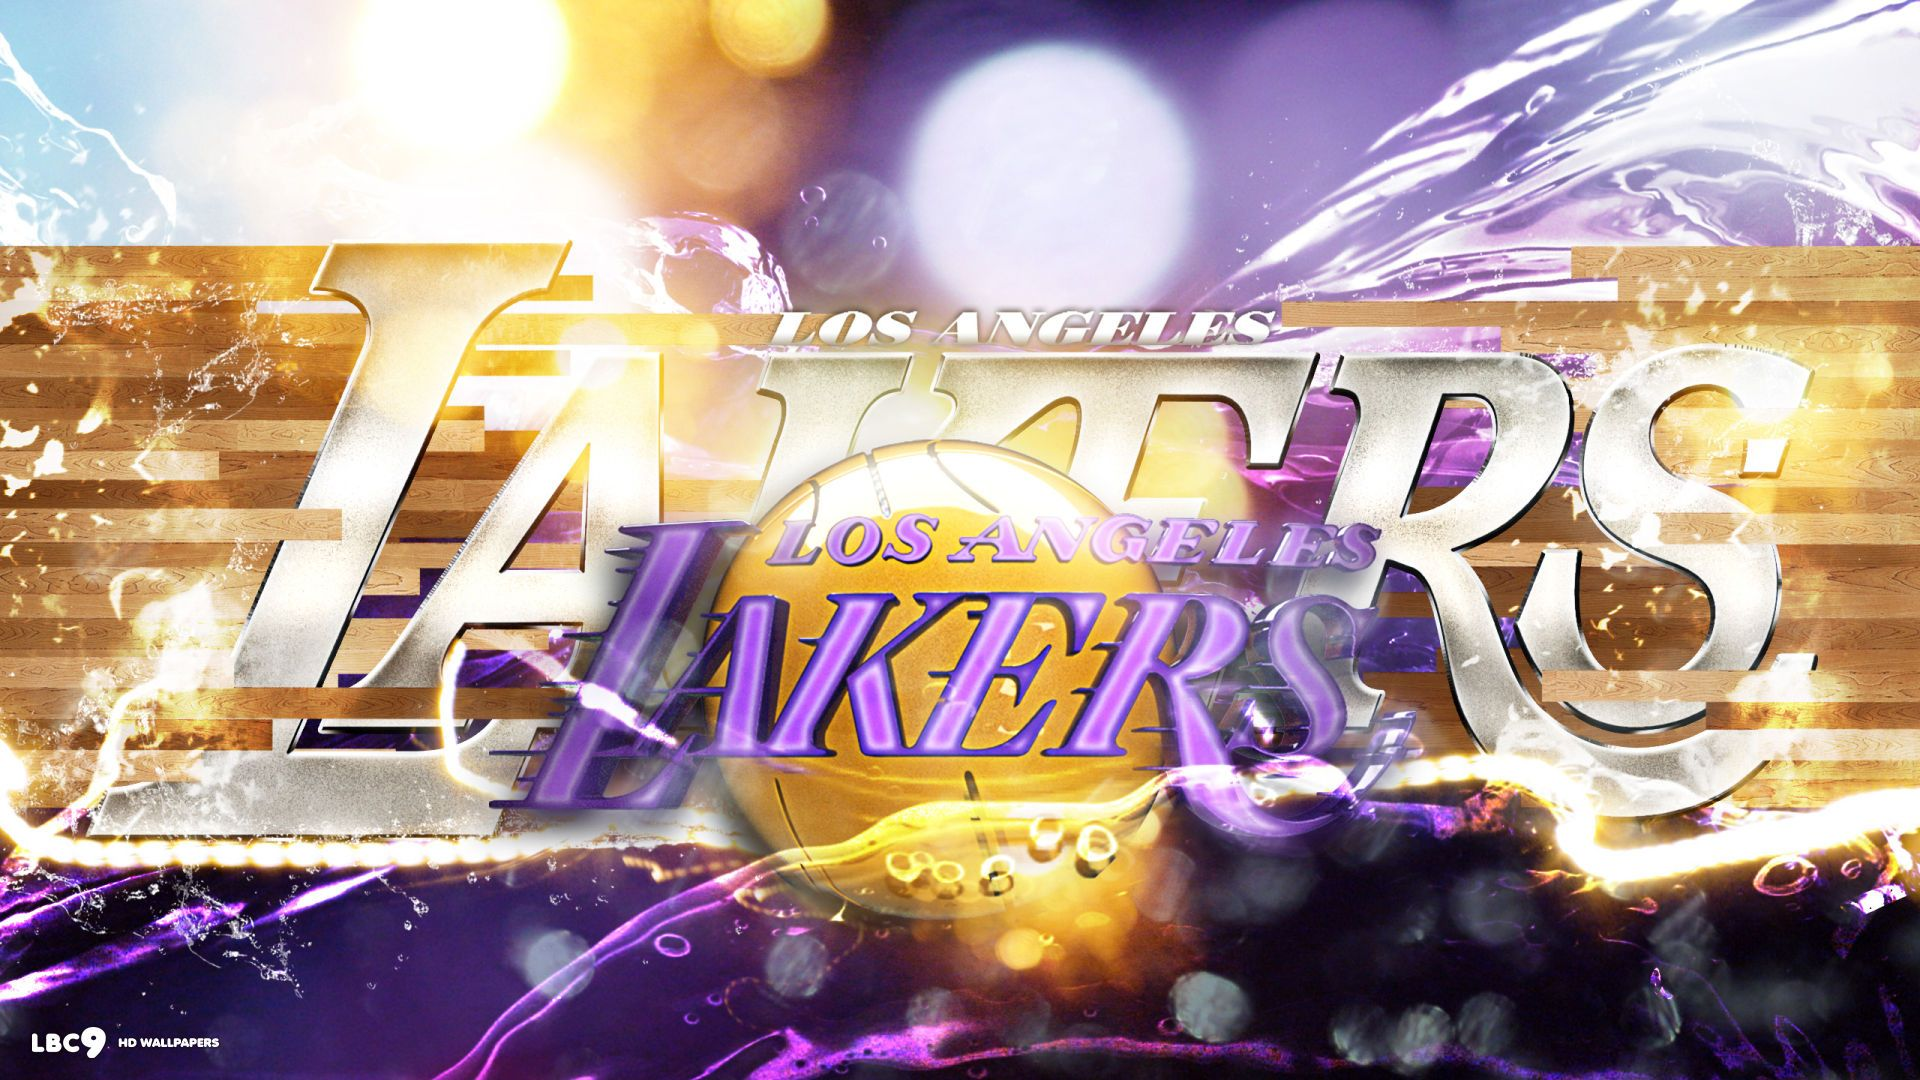 Undefined la lakers wallpapers hd 42 wallpapers adorable undefined la lakers wallpapers hd 42 wallpapers adorable wallpapers voltagebd Image collections